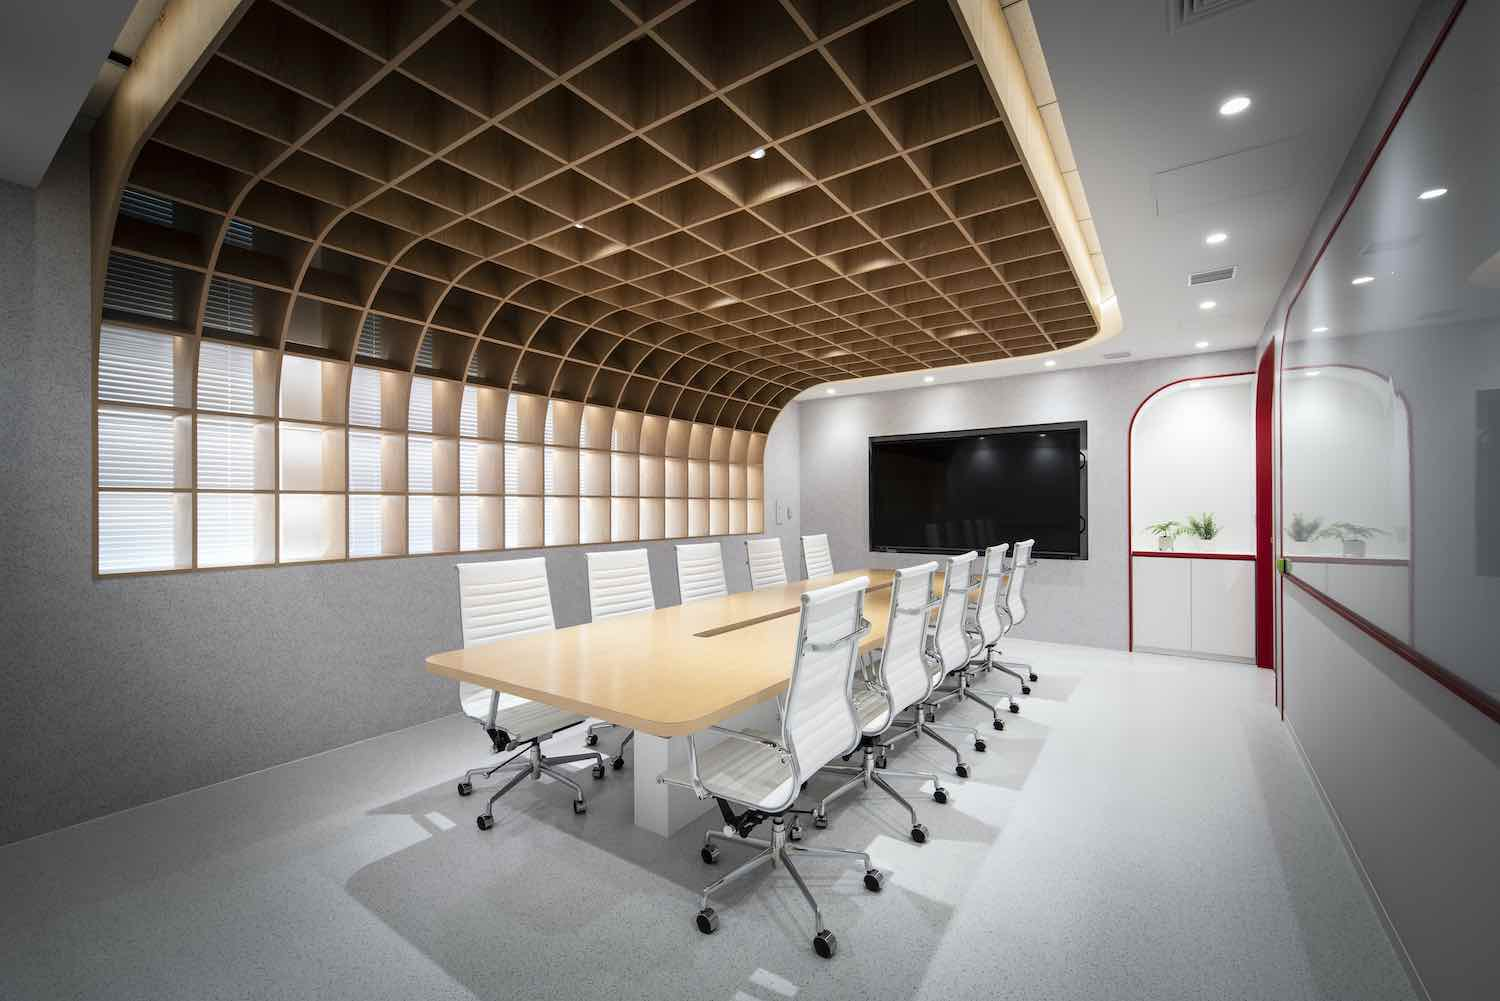 conference room with modern seats and table